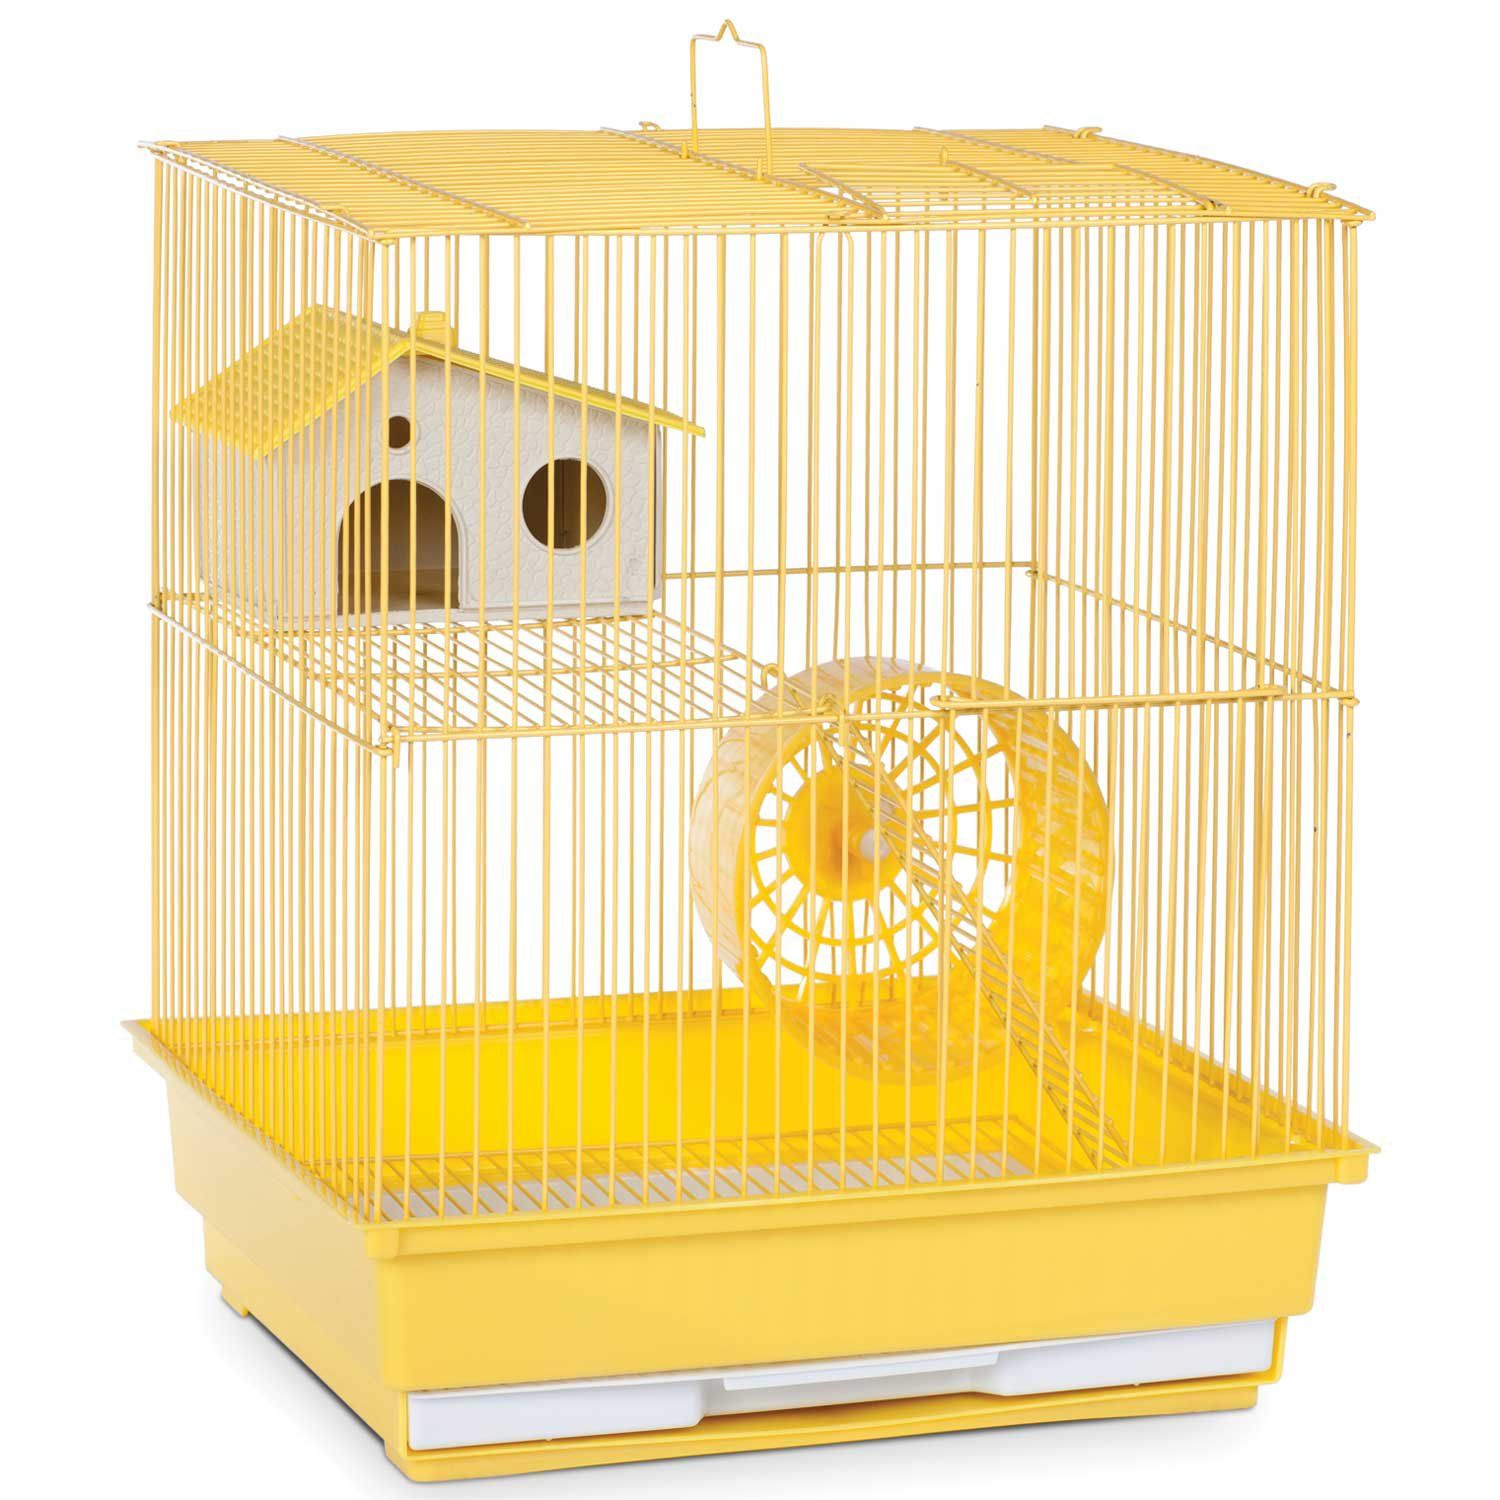 Prevue Pet Products Two Story Yellow Small Animal Cage 14 L X 11 W X 15 25 H Small Animal Cage Pet Cage Small Pets